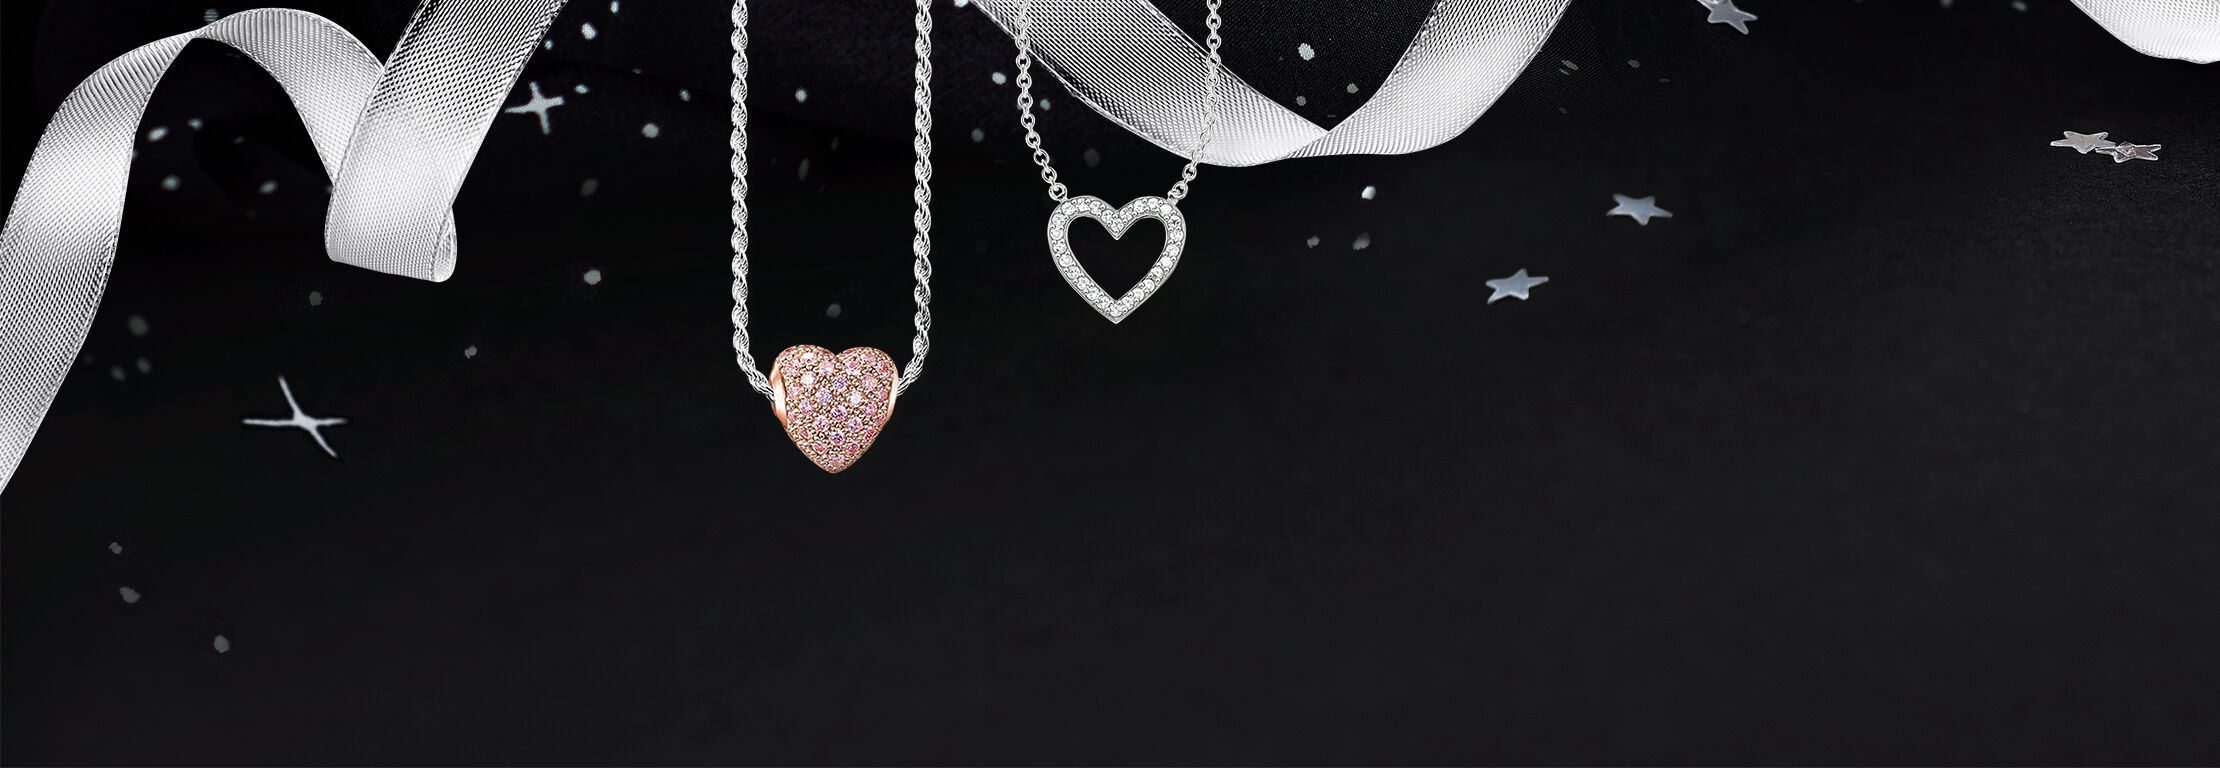 Jewellery For Children Gifts